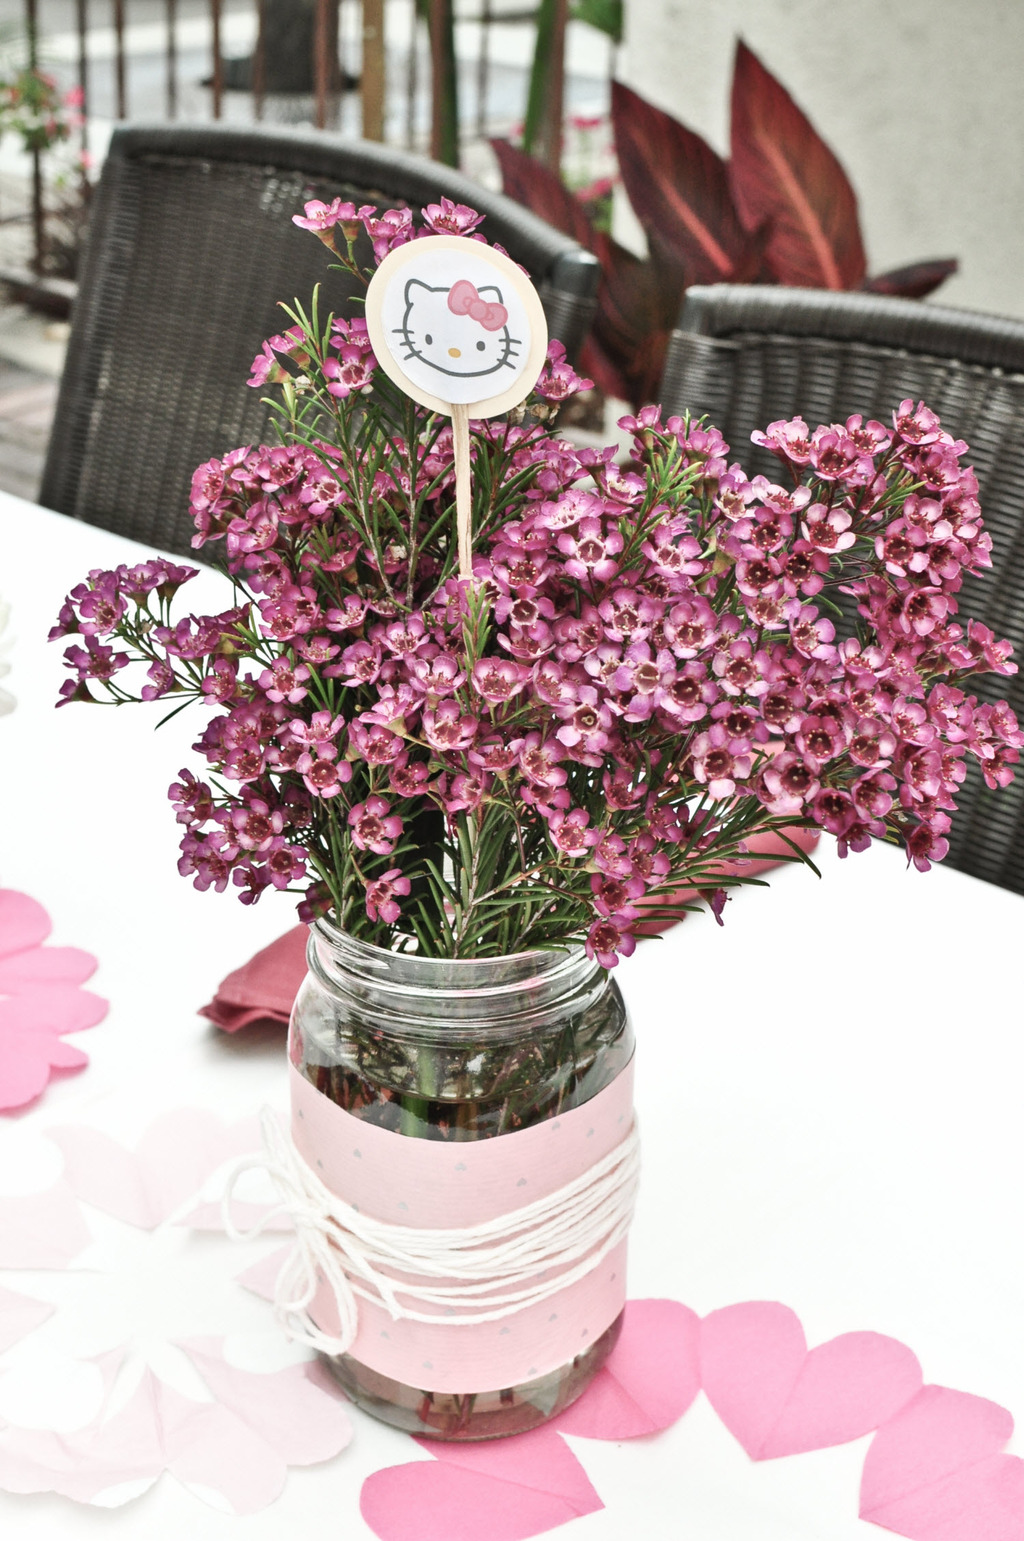 Simple diy wedding flower centerpiece with pink wax flowers in